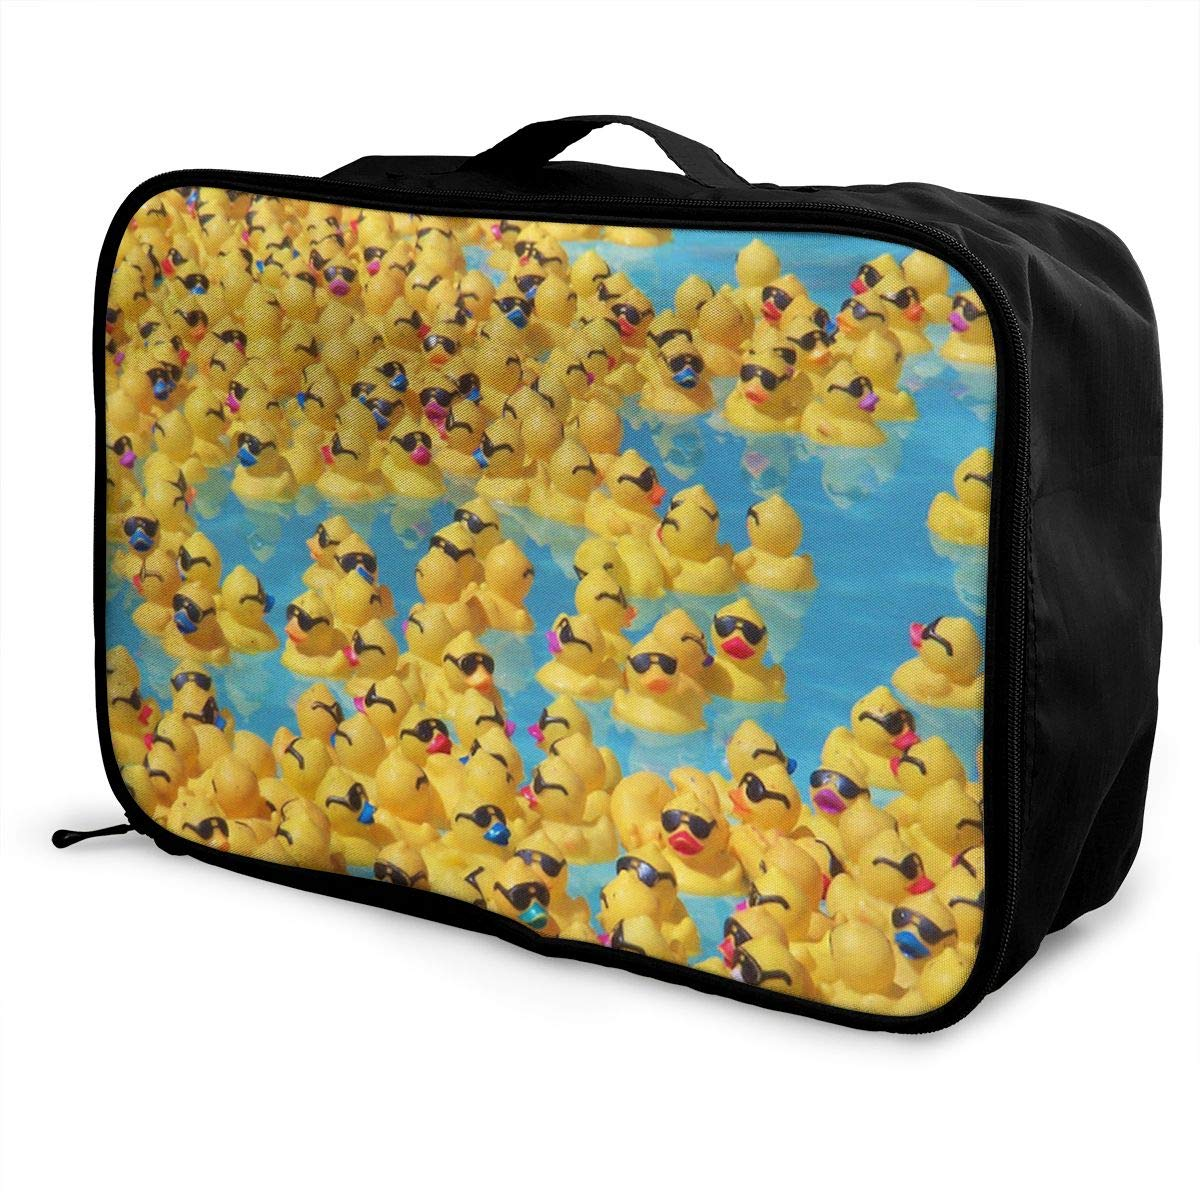 Yellow Ducks With Sunglasses Travel Duffel Bag Durable Luggage Organizer For Holiday Gym Storage Bag Weekend Tote Bag-Pack of 1